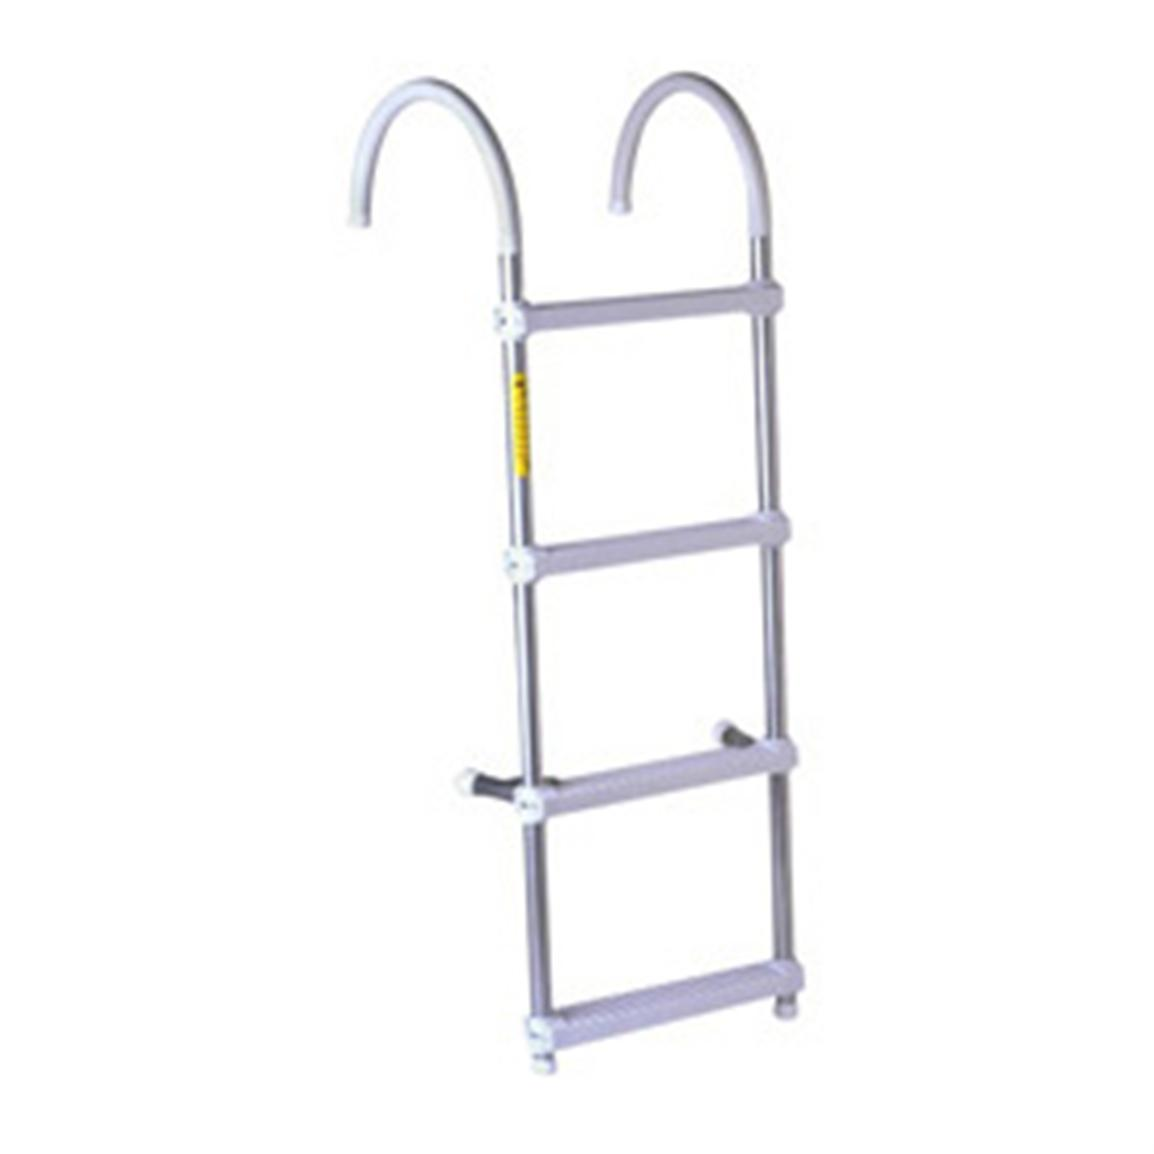 "Garelick 4-step Ladder, 7"" hook"